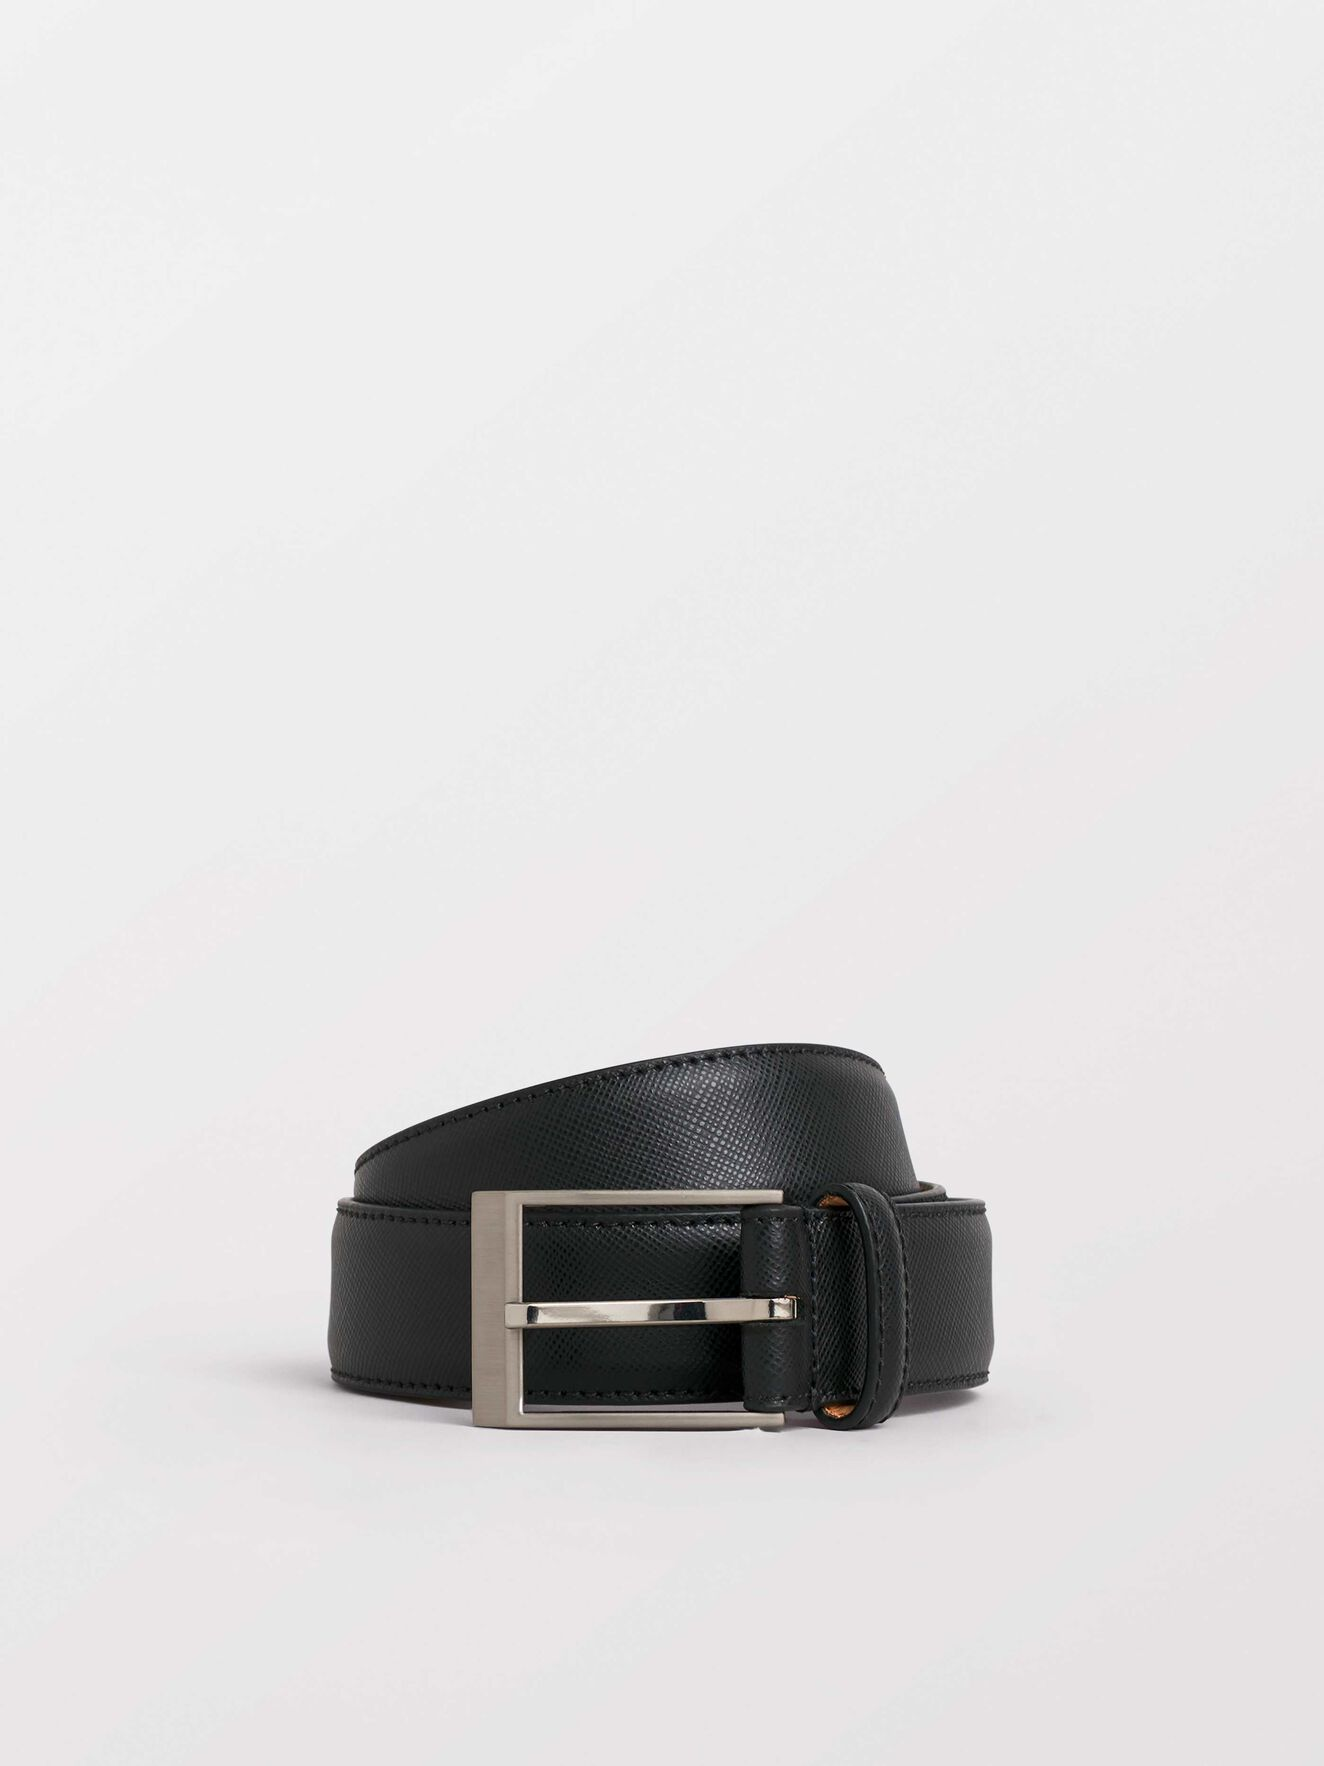 Brightly Belt in Black from Tiger of Sweden